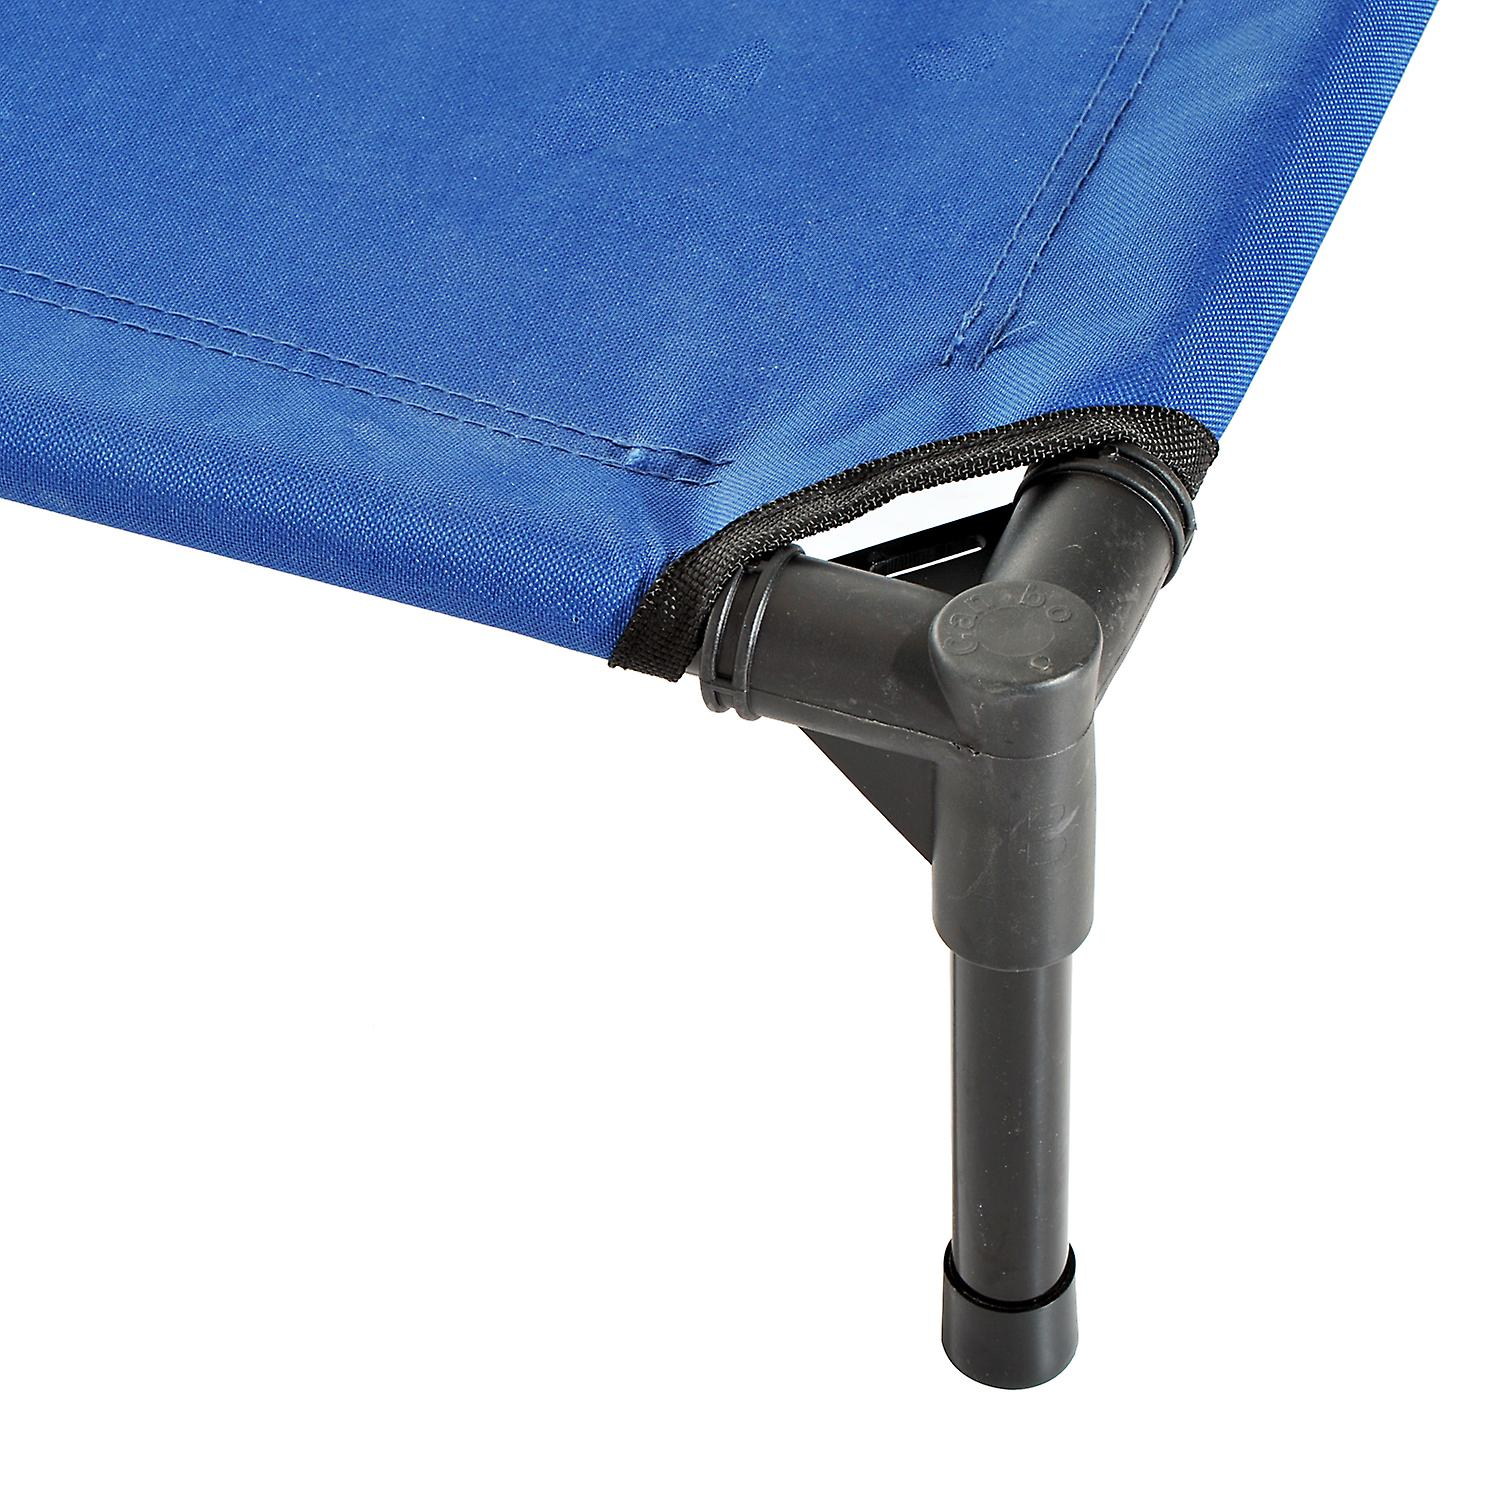 PawHut Elevated Pet Bed Portable Camping Raised Dog Bed w/ Metal Frame Blue (Medium)